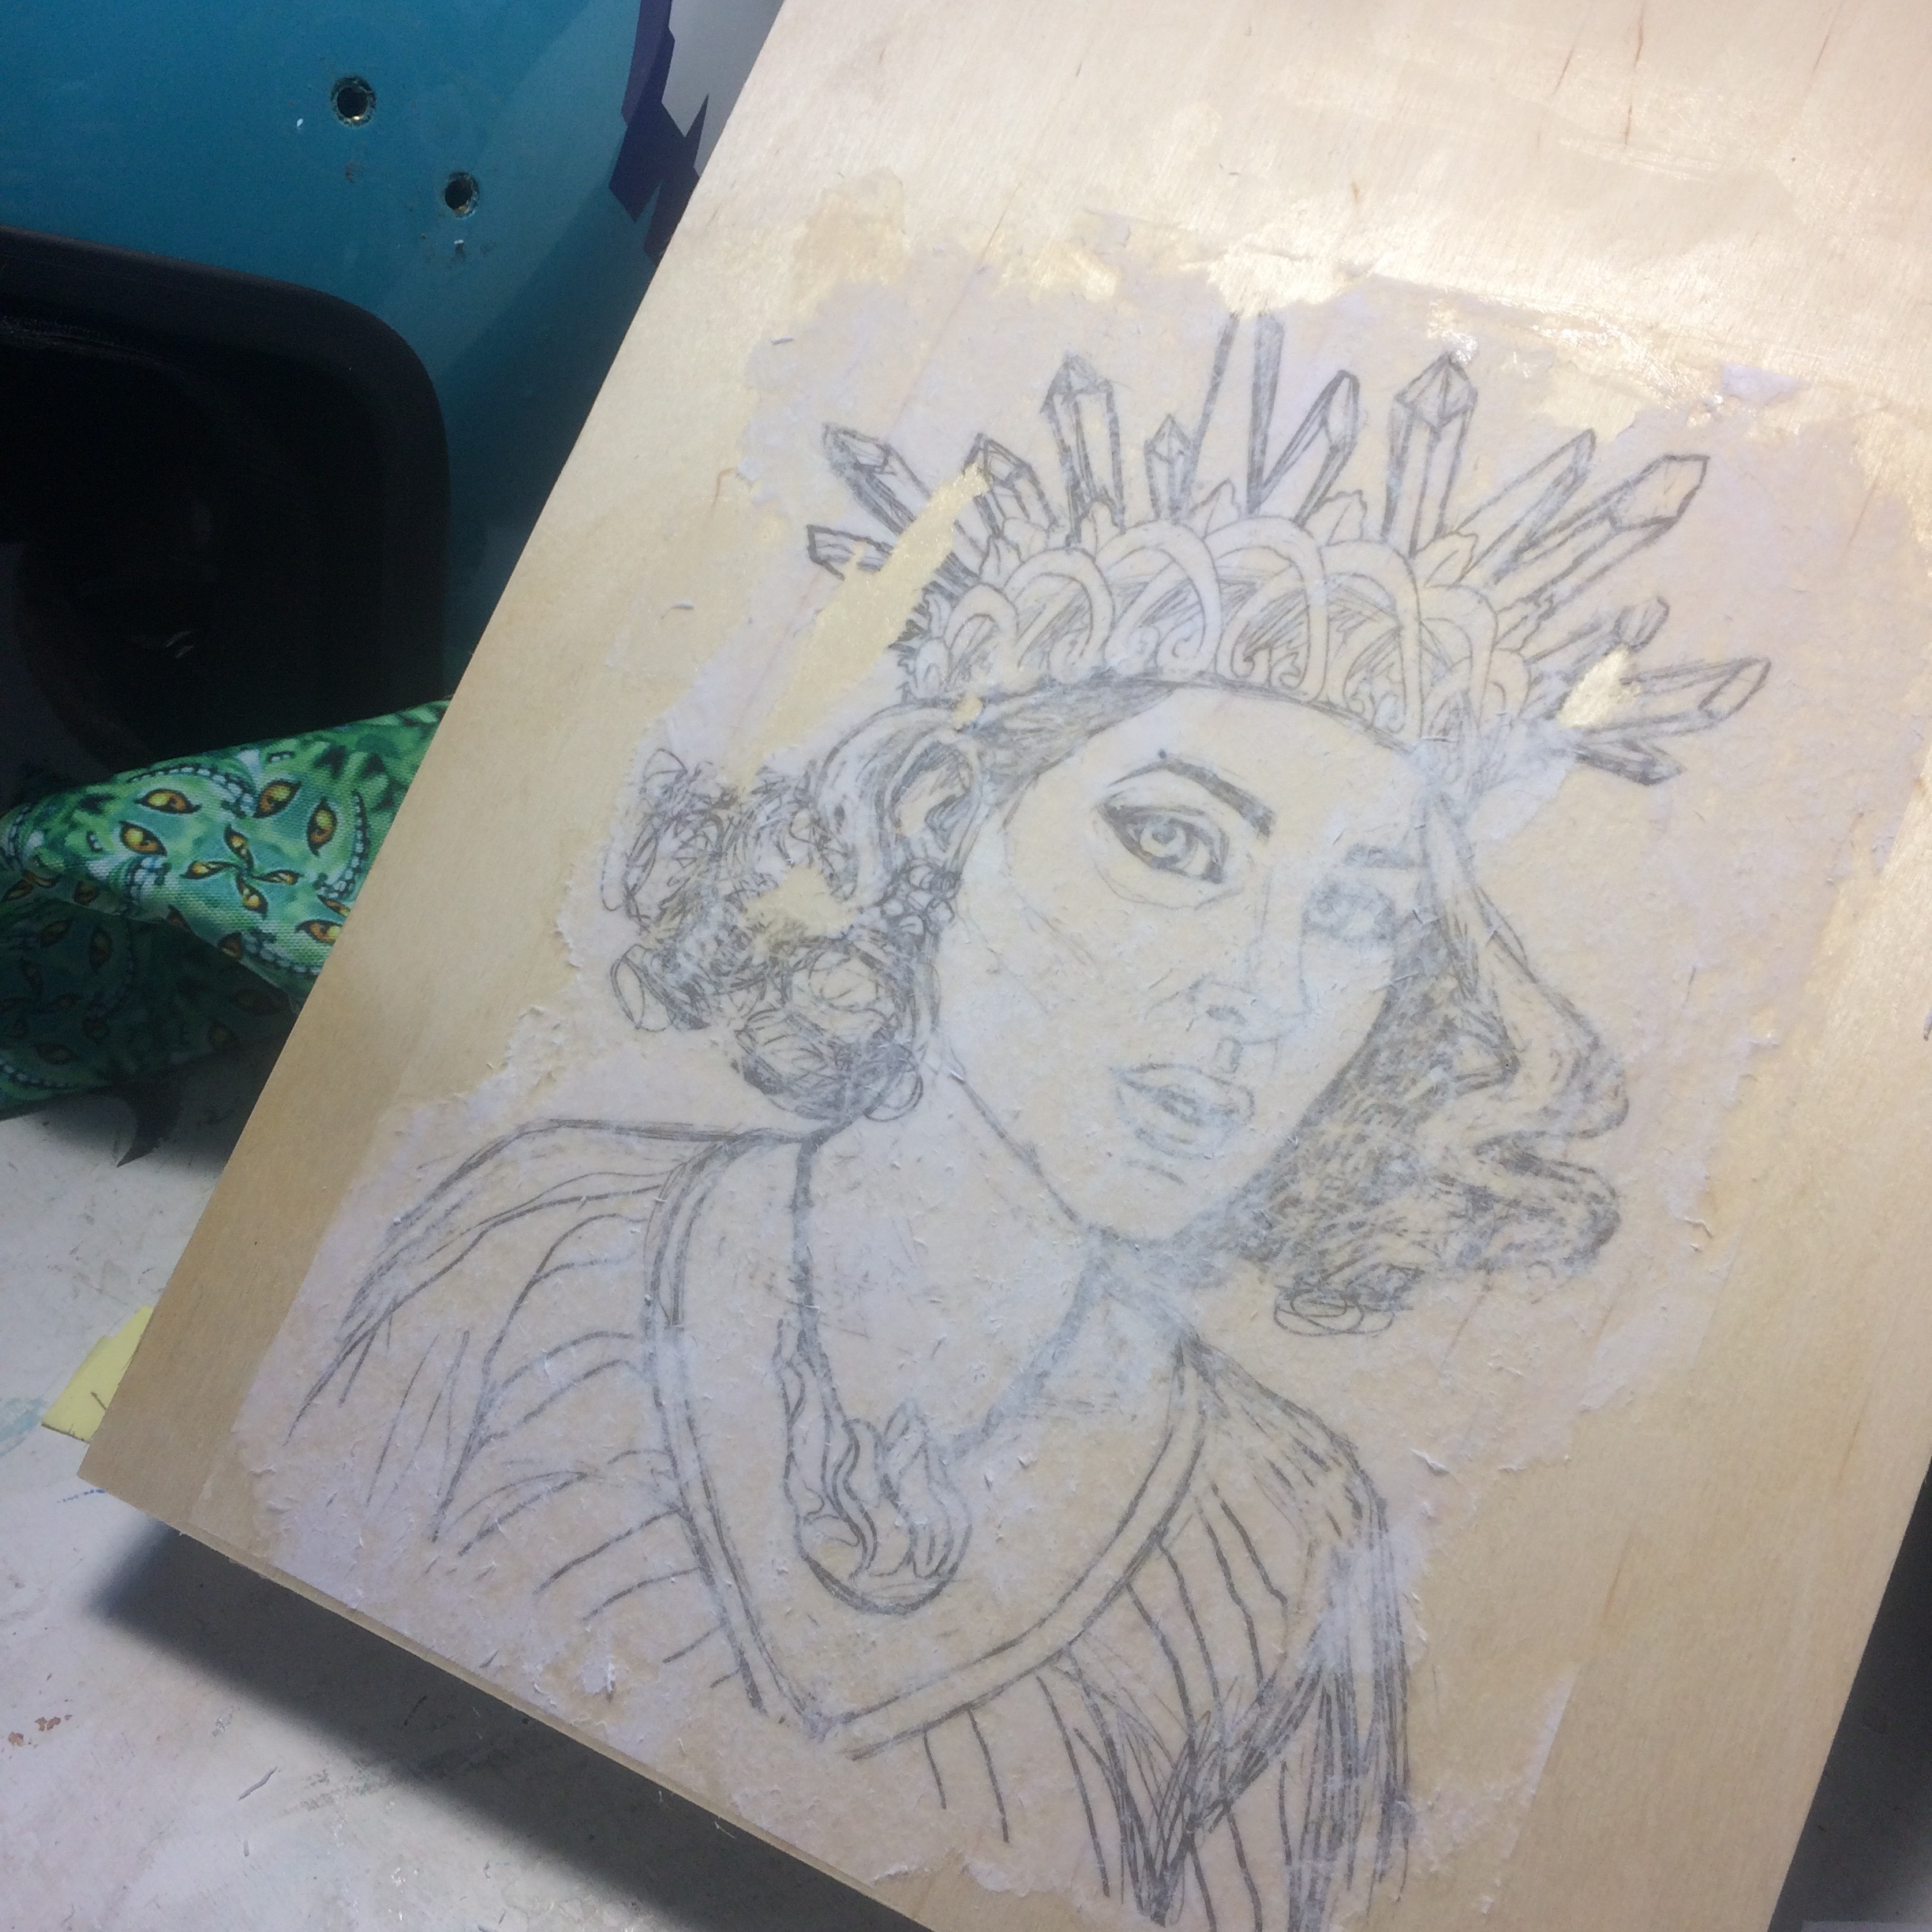 Transfer sketch to wood panel